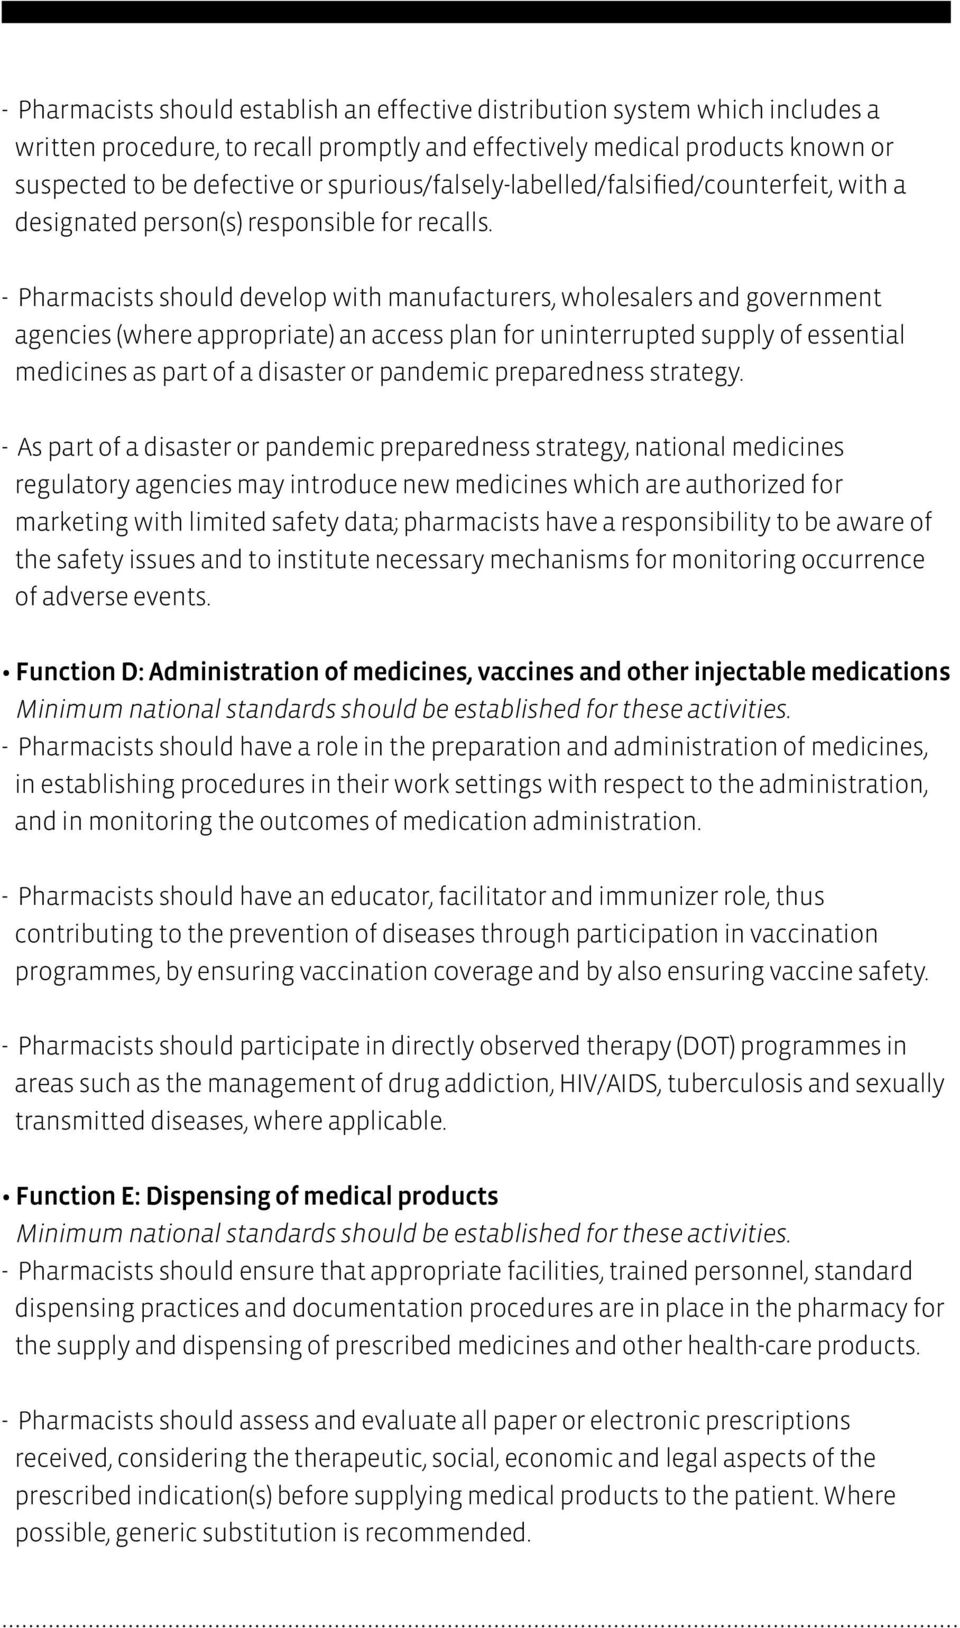 - Pharmacists should develop with manufacturers, wholesalers and government agencies (where appropriate) an access plan for uninterrupted supply of essential medicines as part of a disaster or